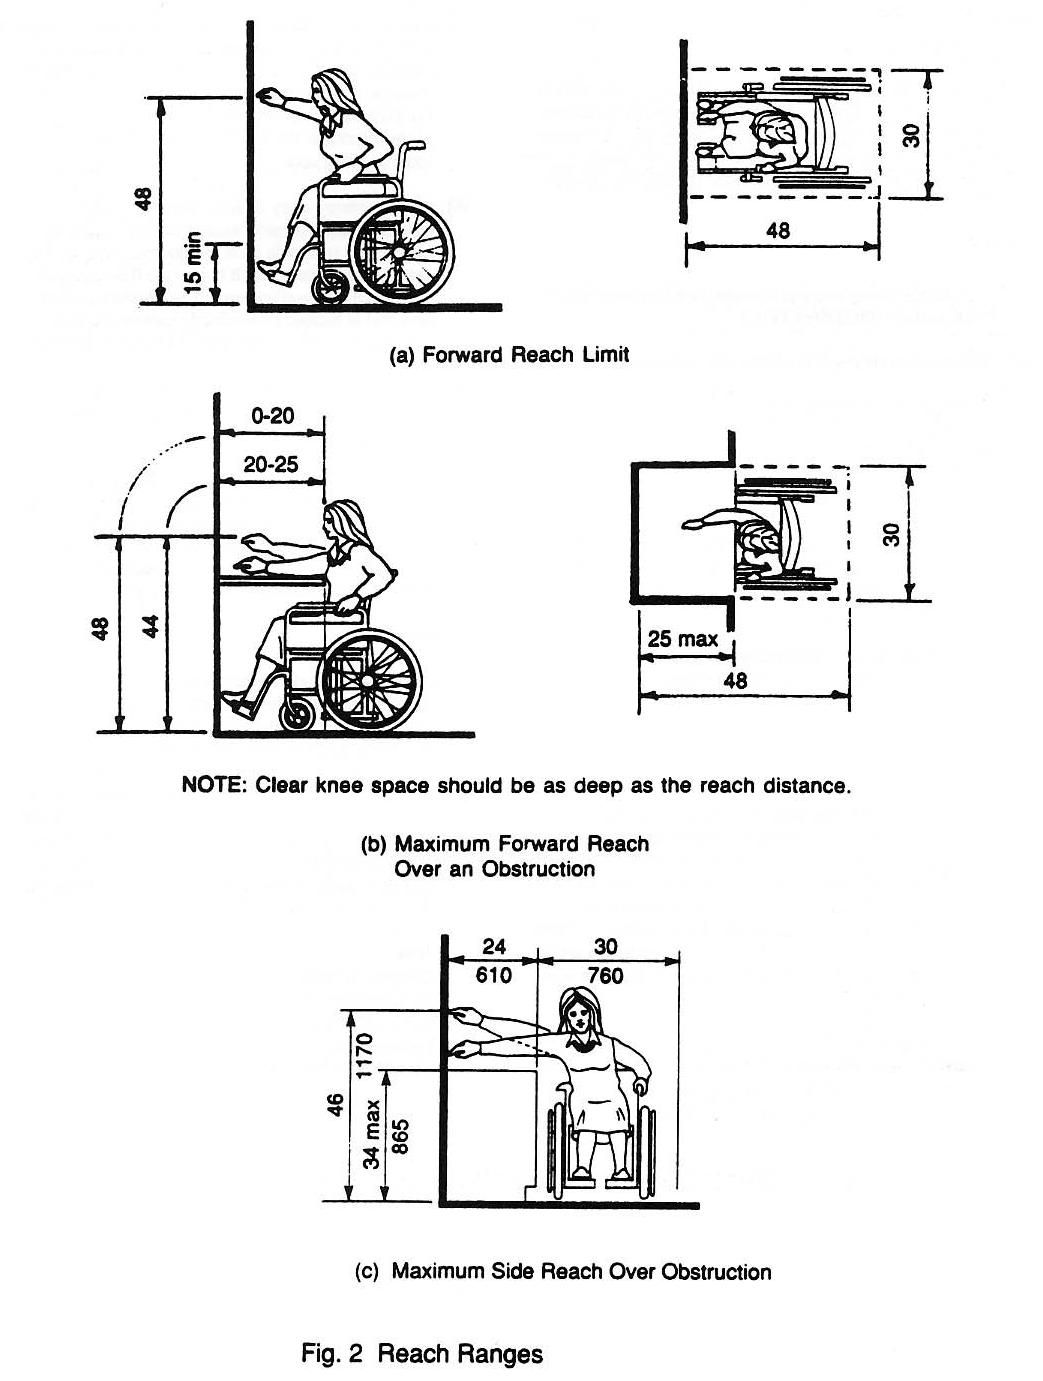 Pin By Mck Designs Llc On Codes And Standards In